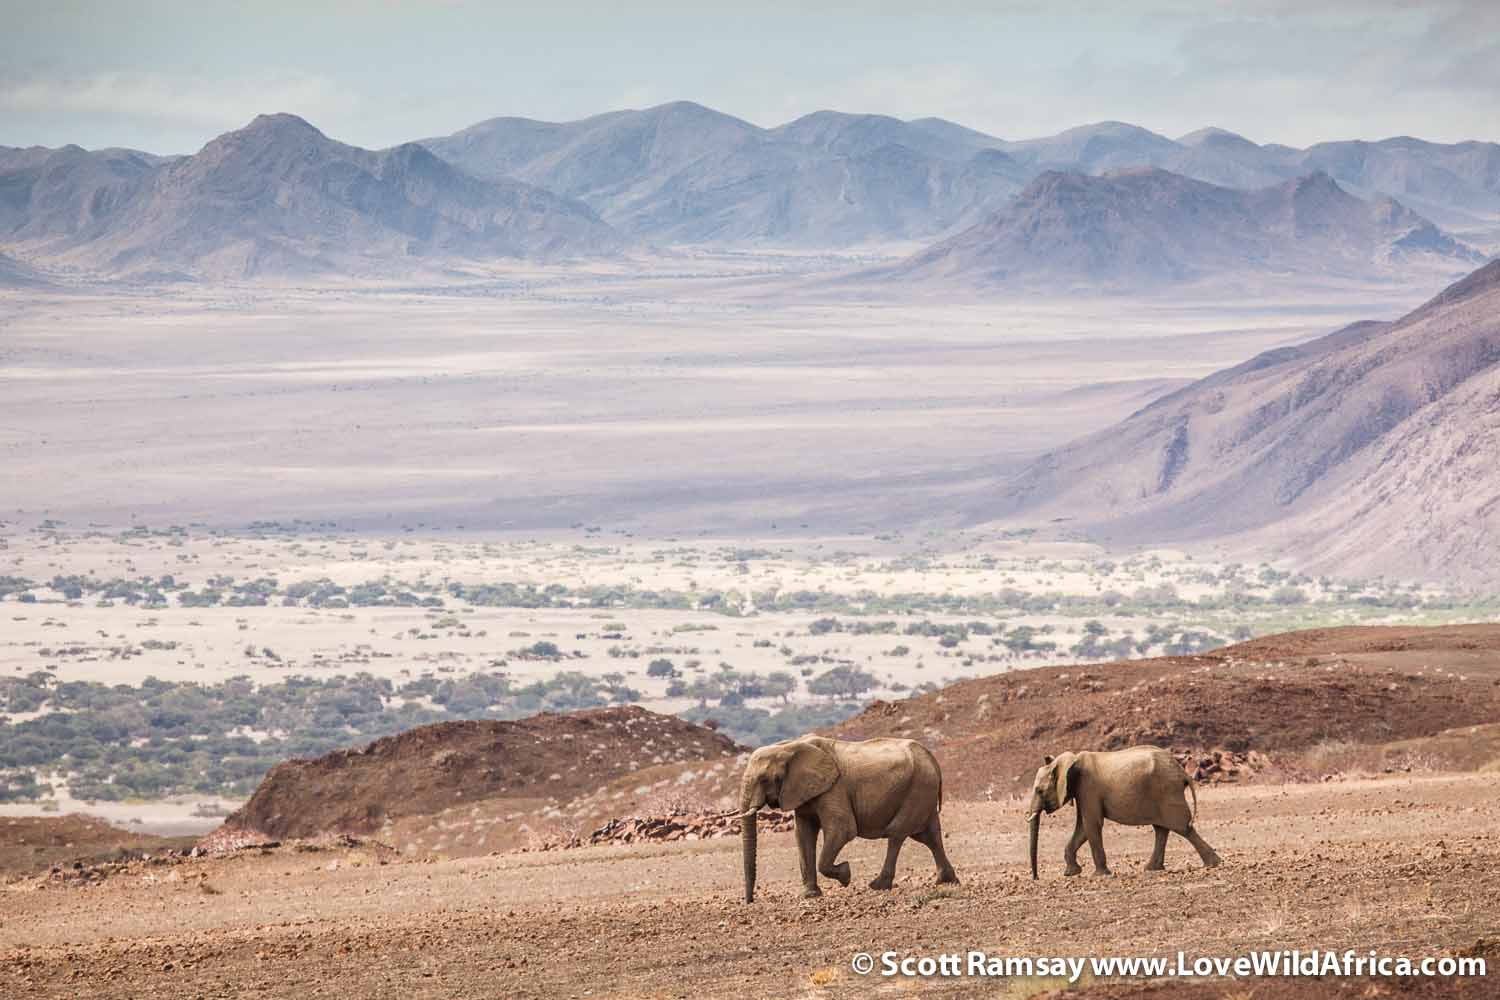 Desert-adapted elephants in northwest Namibia